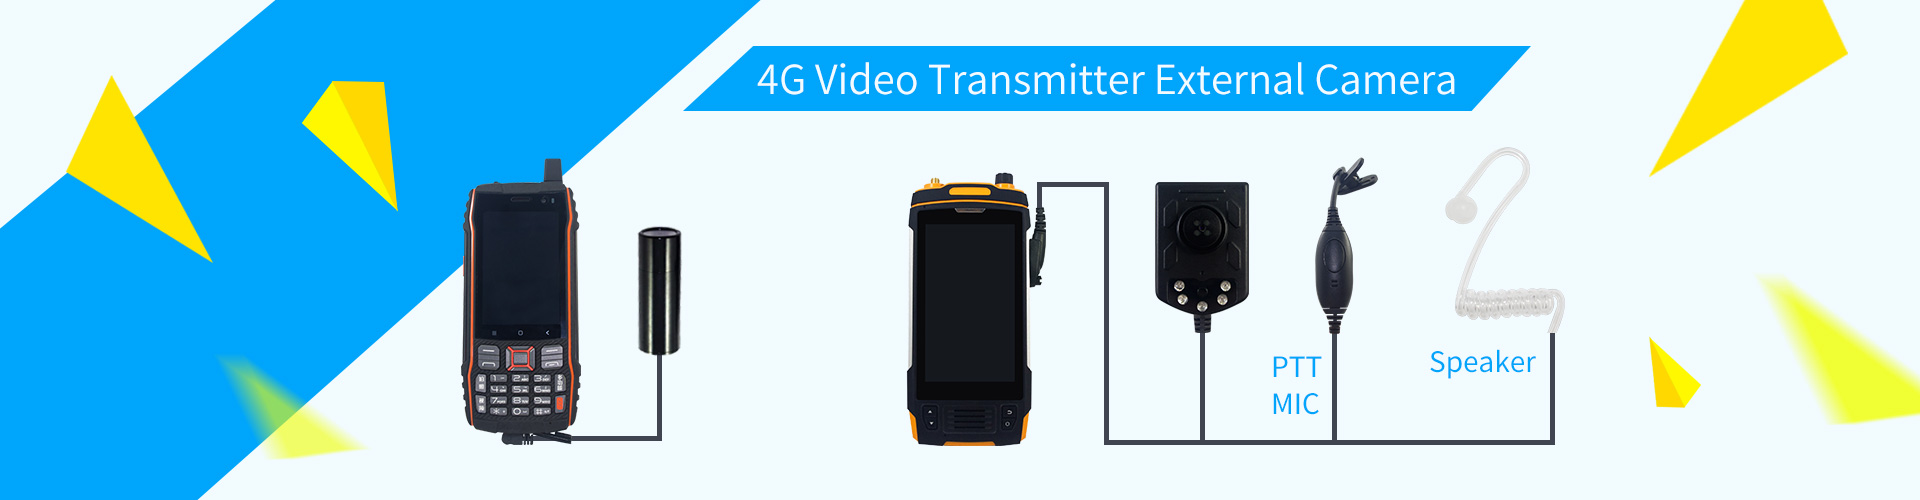 4G video transmitter with external camera